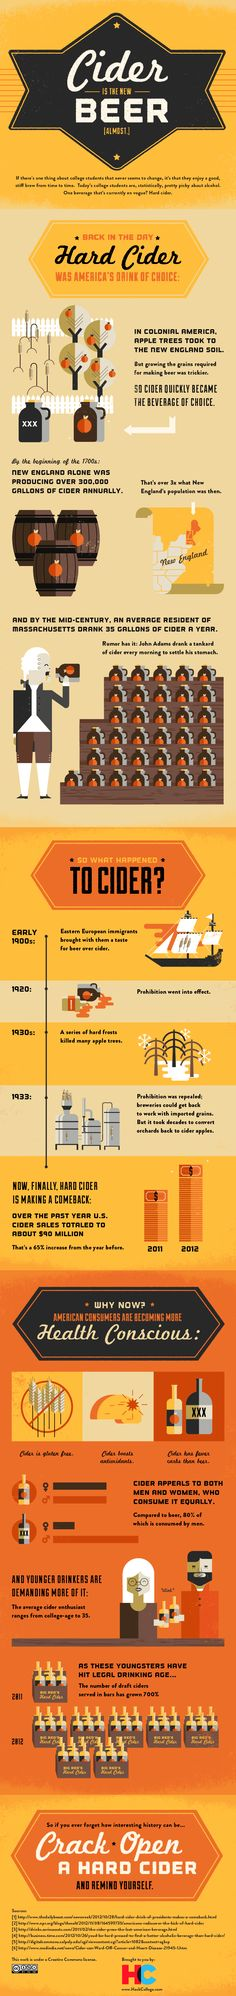 Infographic: Cider is the New Beer - HackCollege  So whether you've been a cider aficionado for years or you're just getting into this world of apple-flavored delight, take a look at the following infographic and see for yourself the proud history of hard cider.